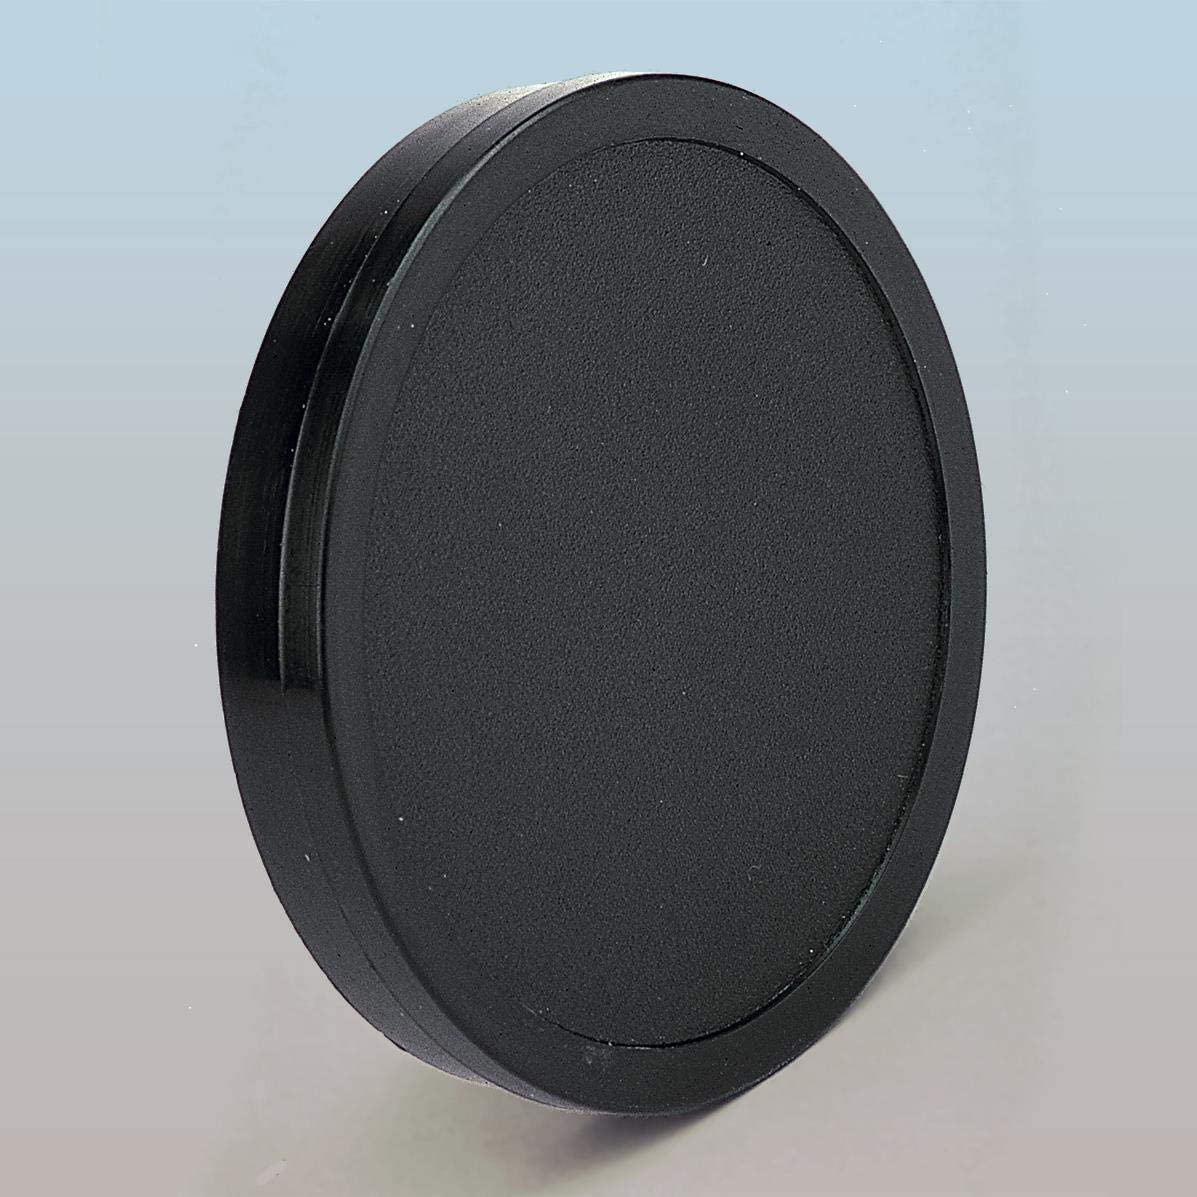 Kaiser Slip-On Lens Cap for Lenses with an Outside Diameter of 77mm (206977)